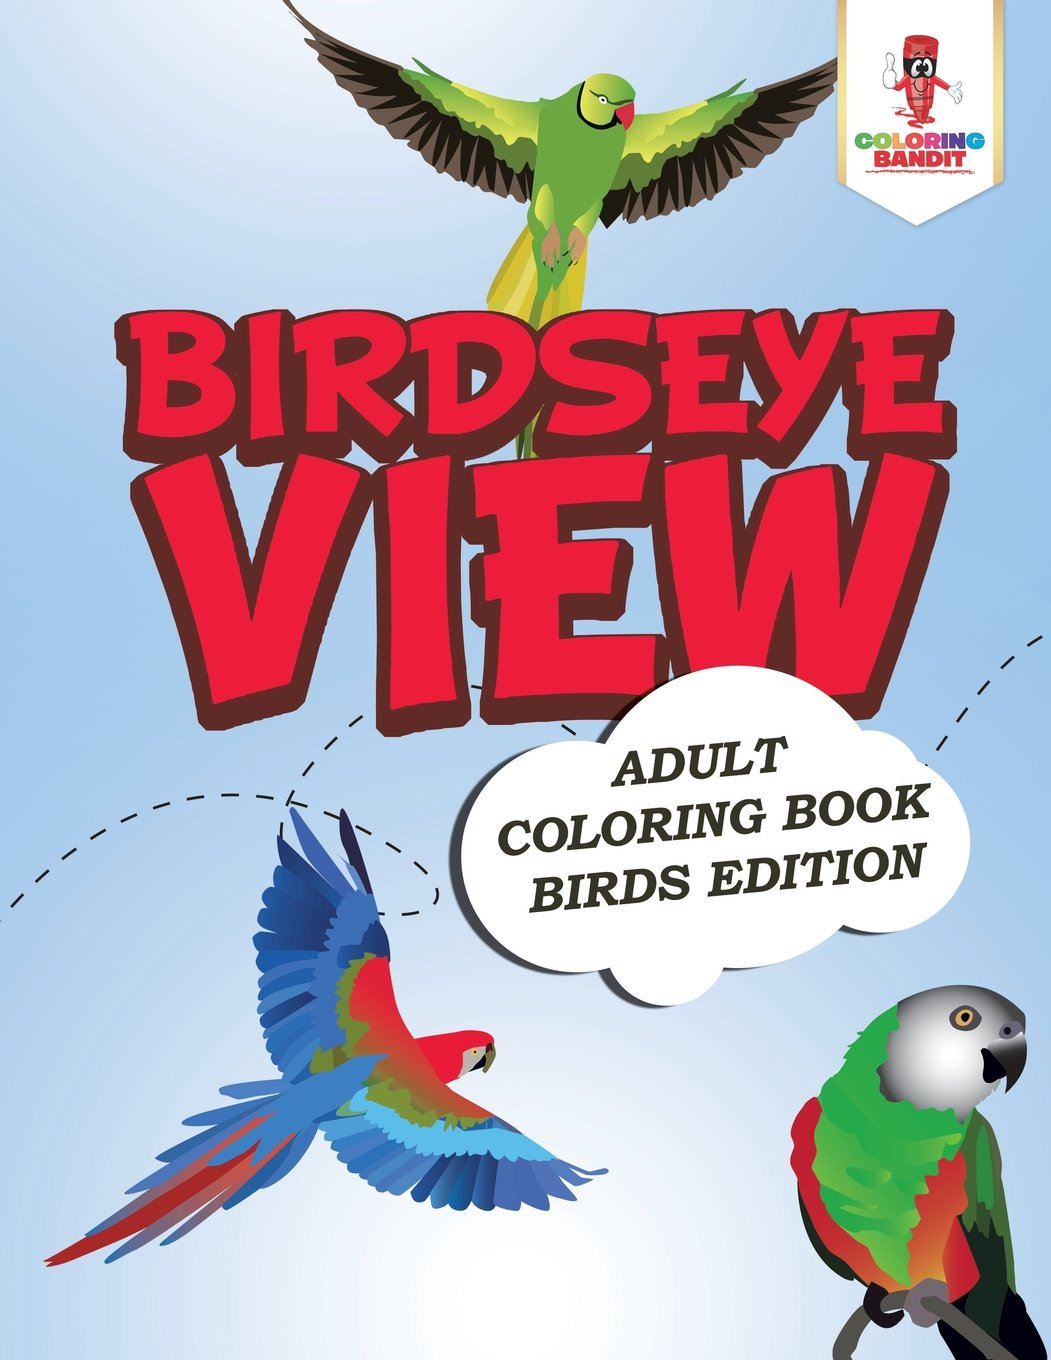 birdseye-view-adult-coloring-book-birds-edition